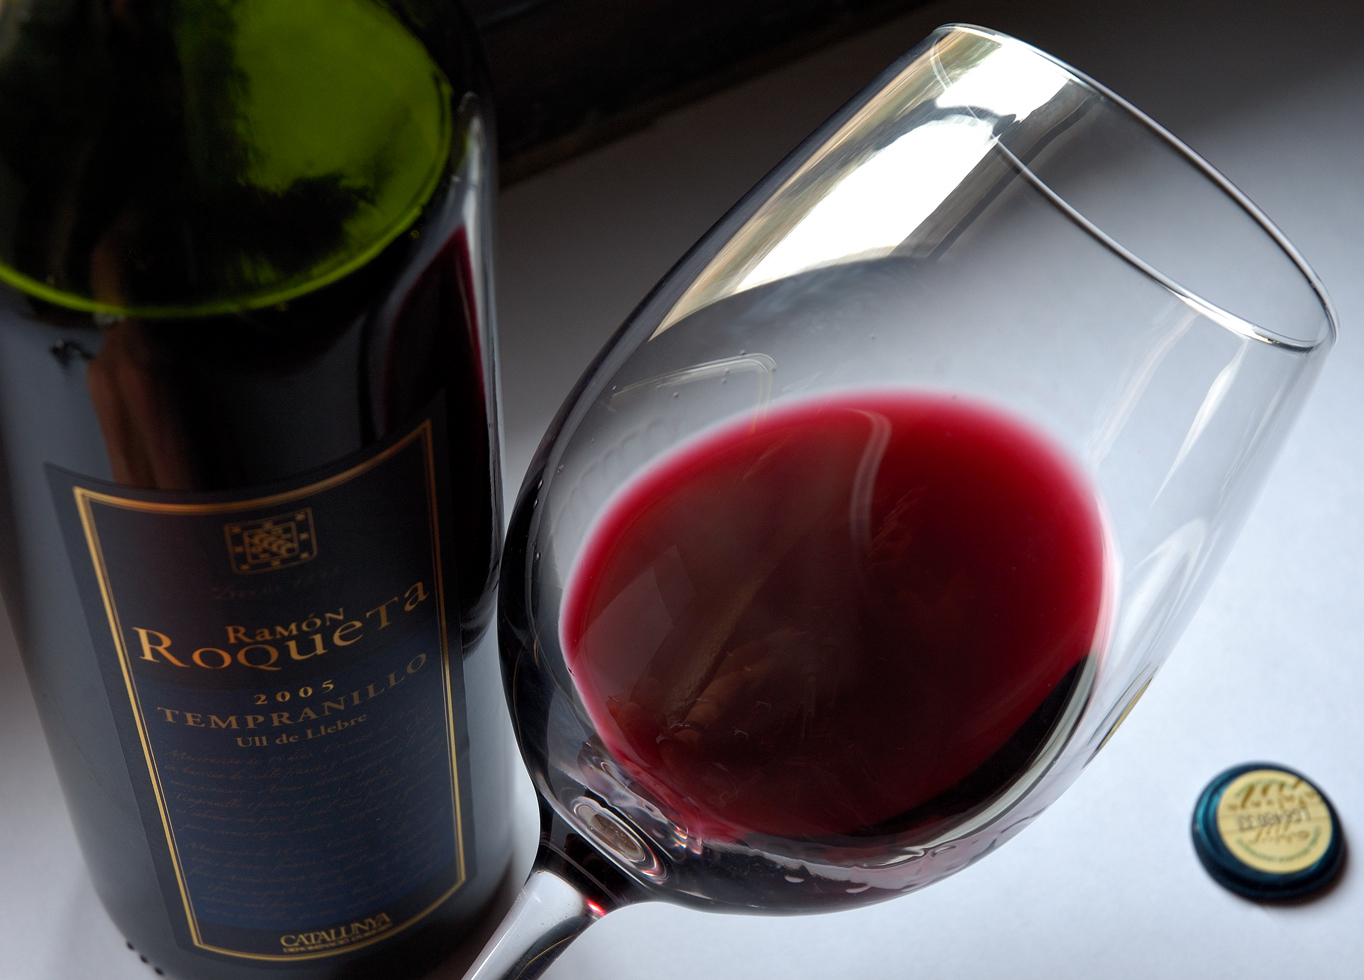 Research says Red Wine is very healthy – in moderate amounts